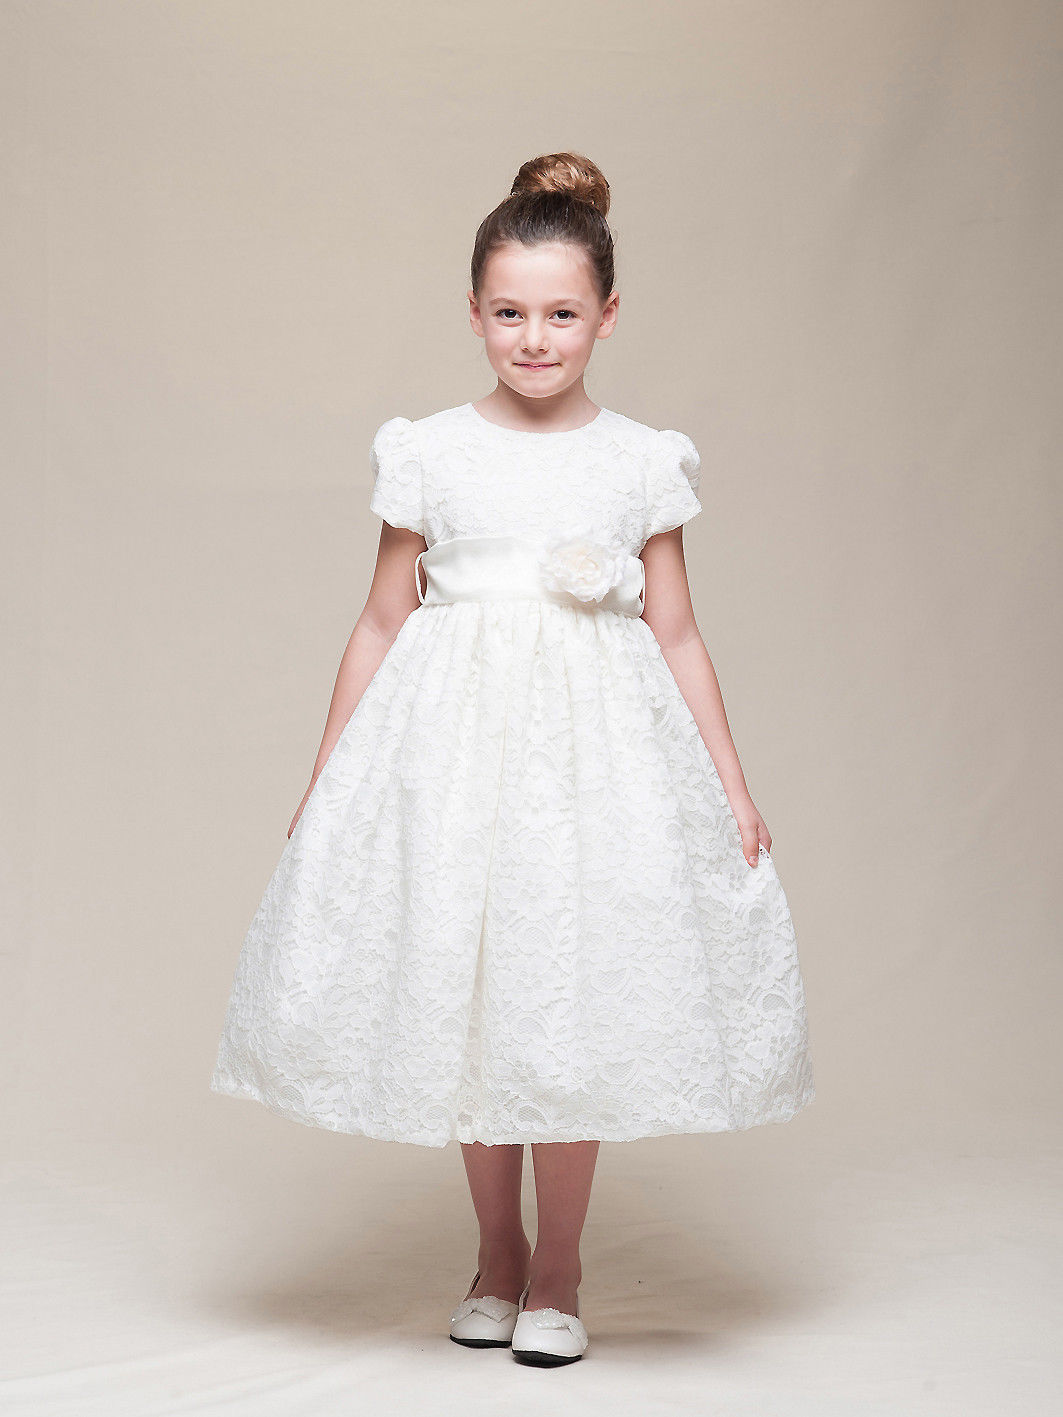 Stunning Ivory Lace Flower Girl Pageant Dress w/Rose Flower Crayon Kids USA - Iv